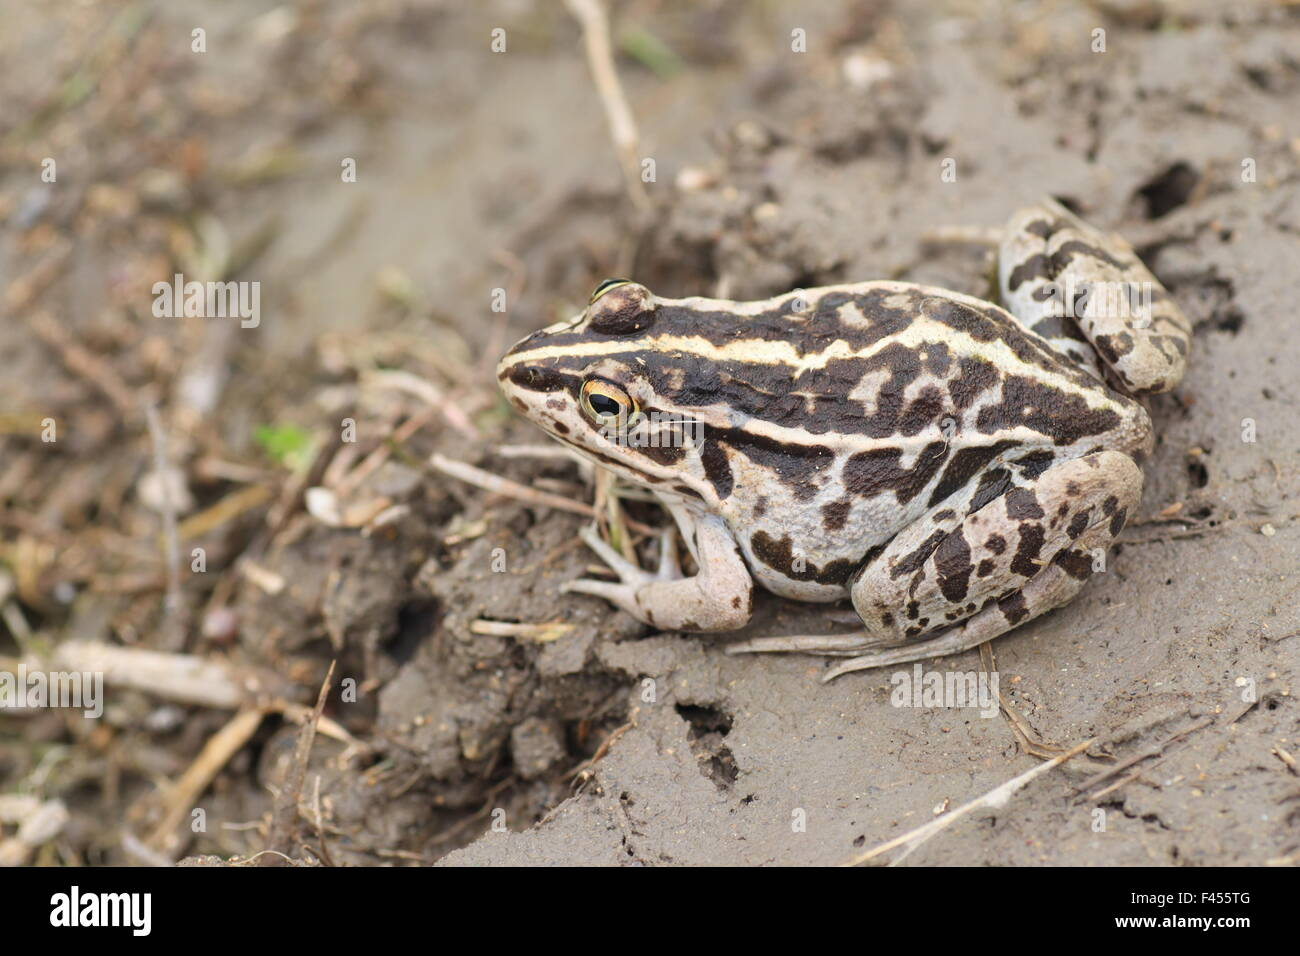 Black-spotted Pond Frog or Dark-spotted frog (Rana nigromaculata) in Japan Stock Photo